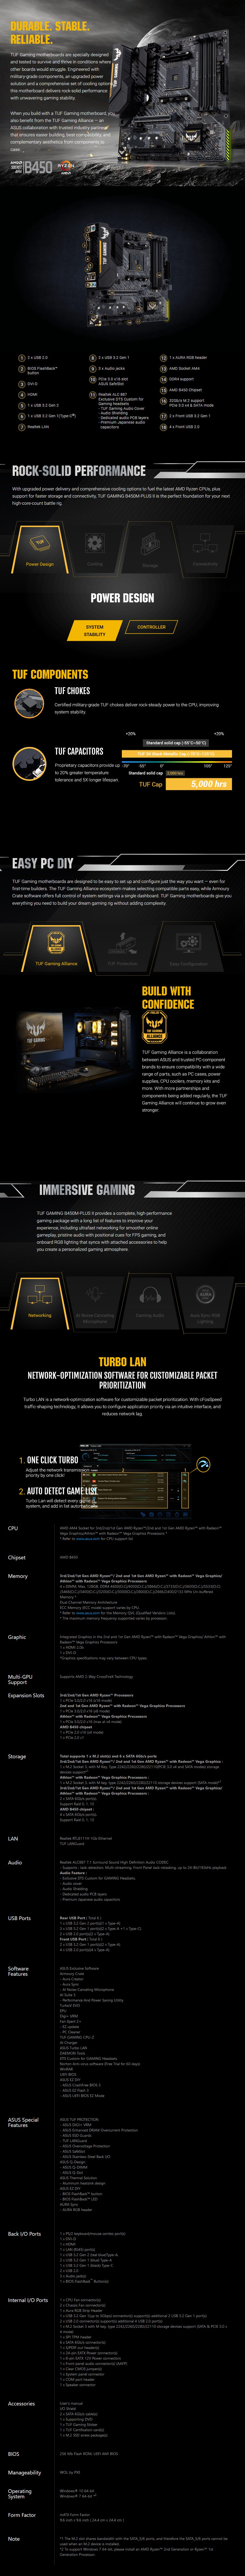 ASUS TUF B450M-PLUS II GAMING M-ATX Motherboard - Overview 1